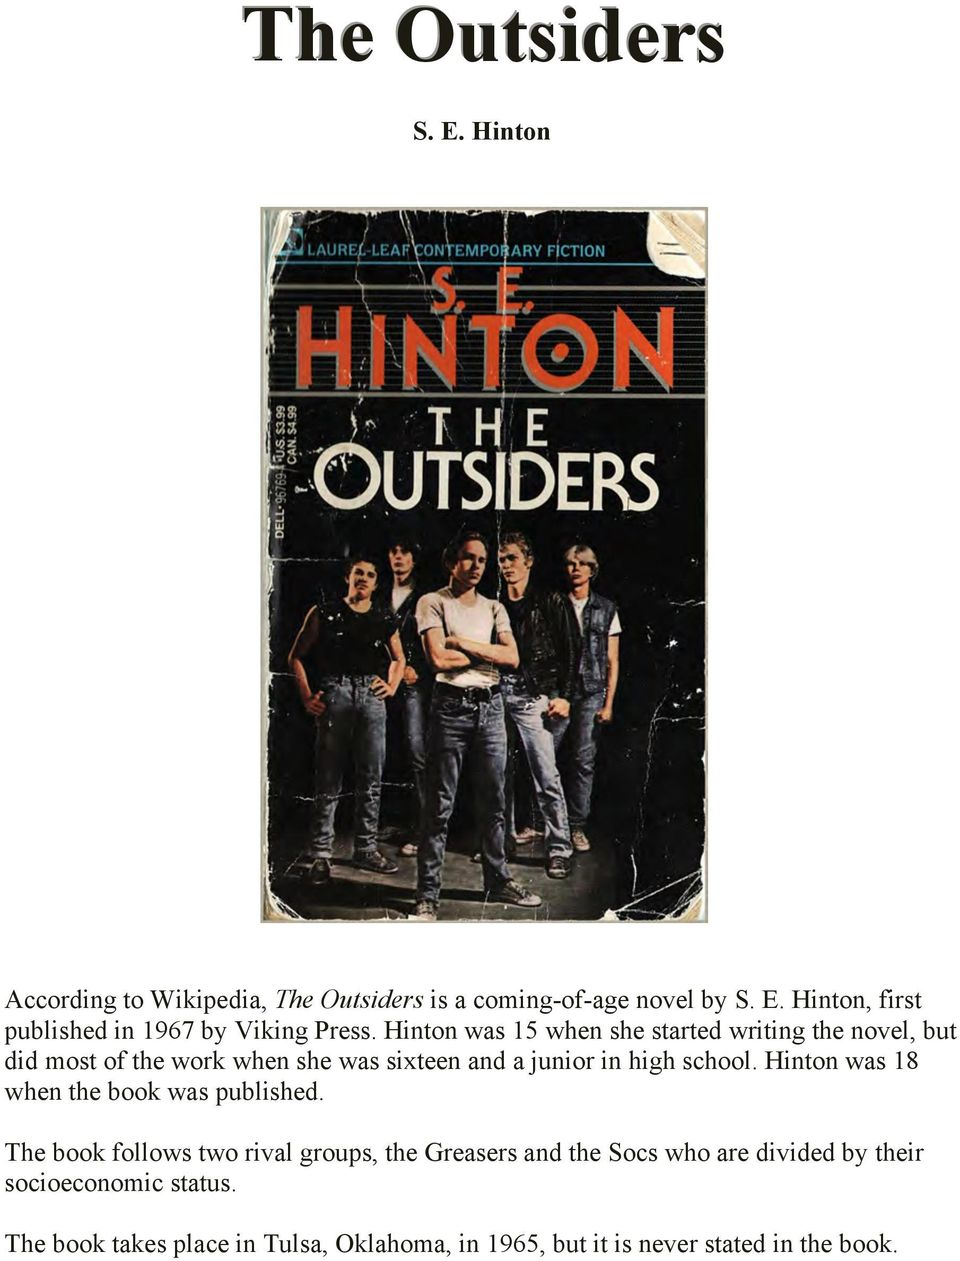 Hinton was 18 when the book was published.